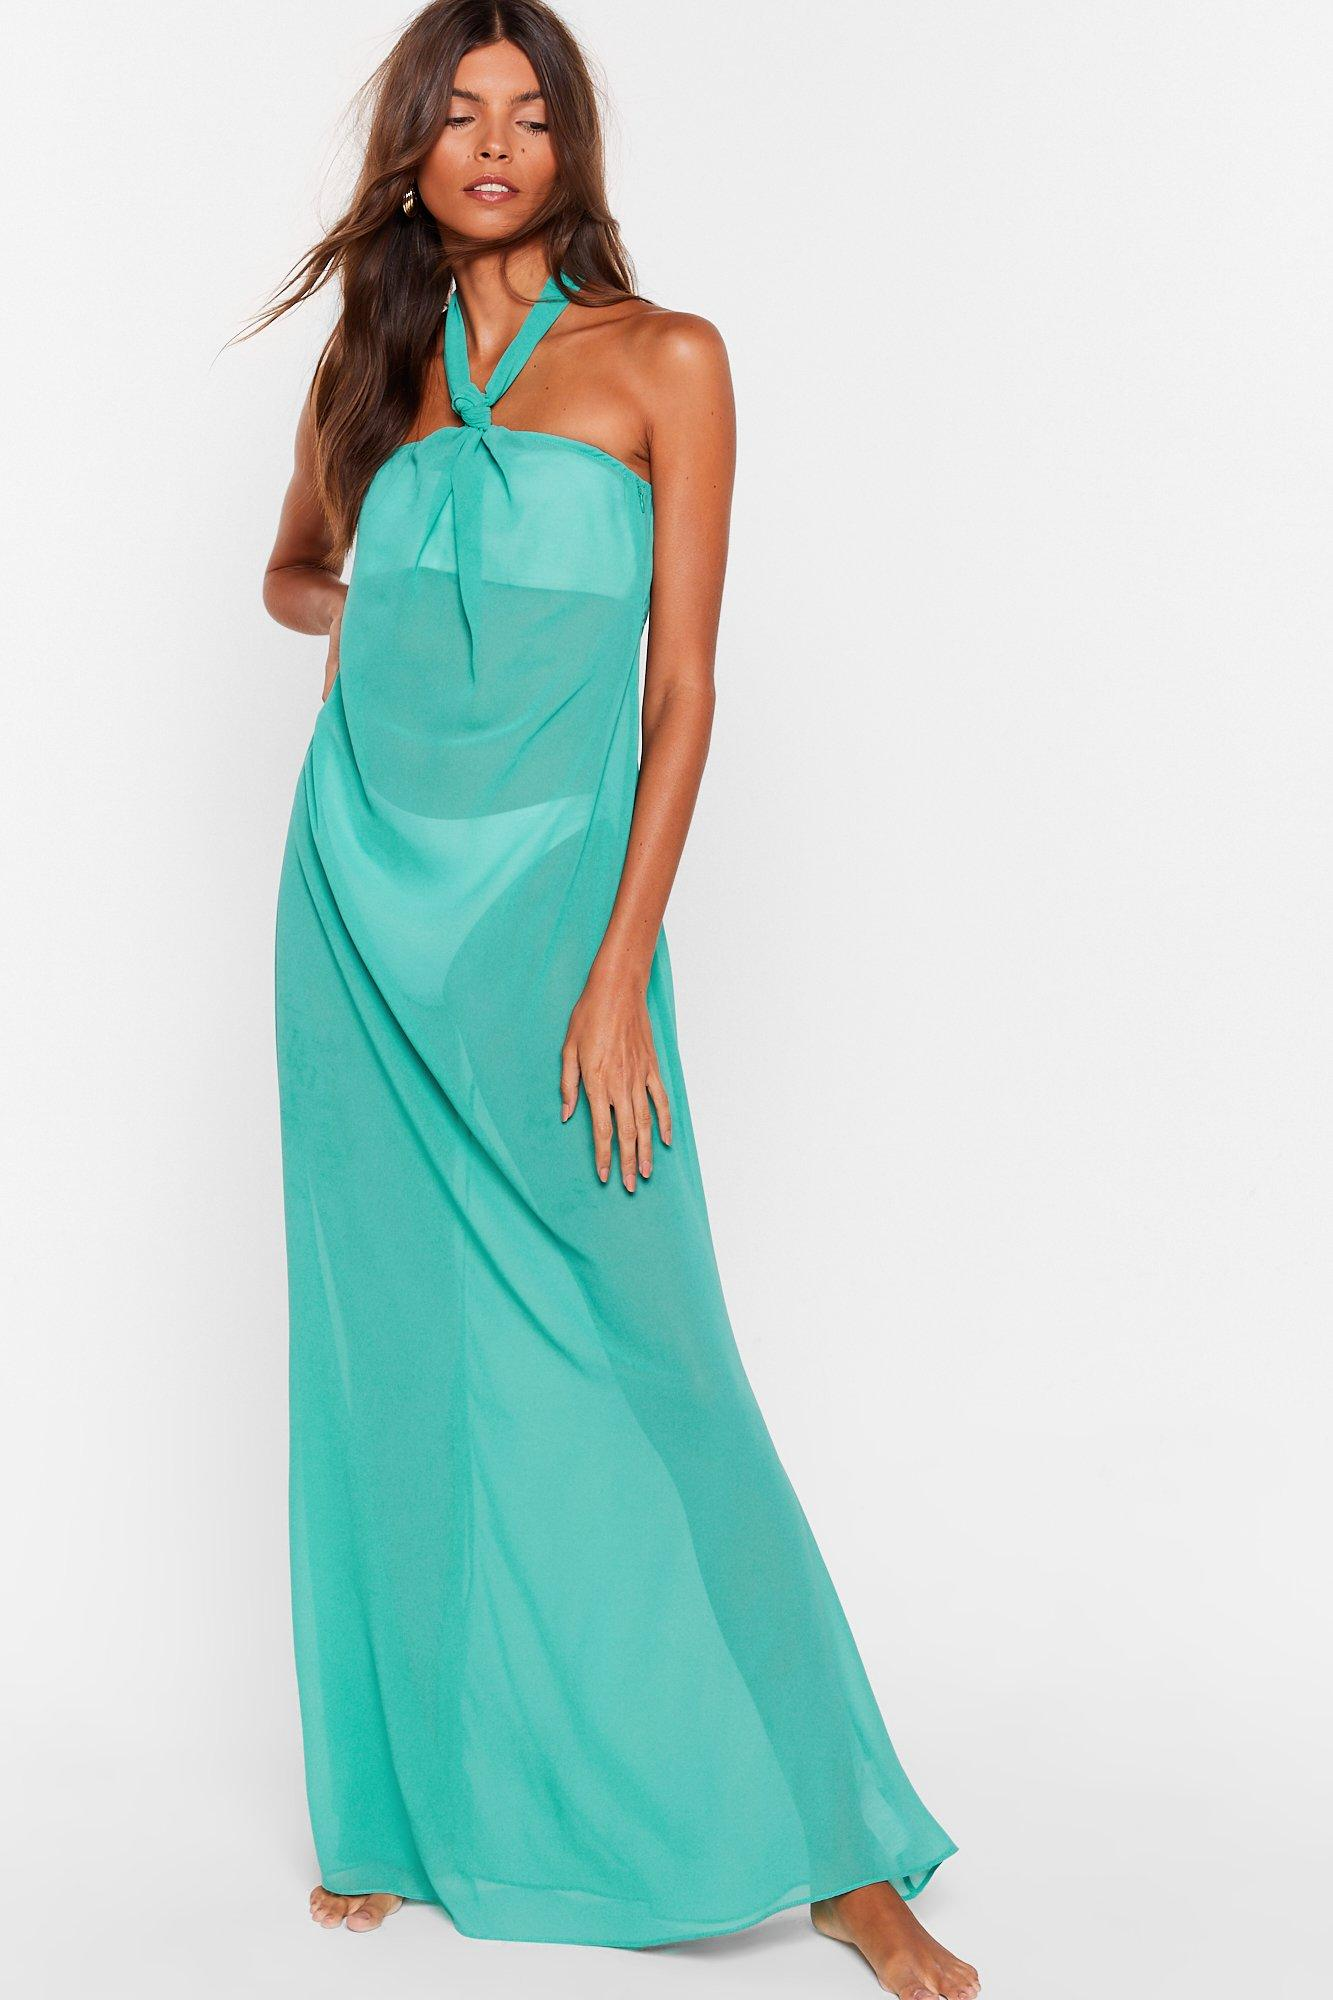 Shell We Dance Chiffon Cover-Up Dress